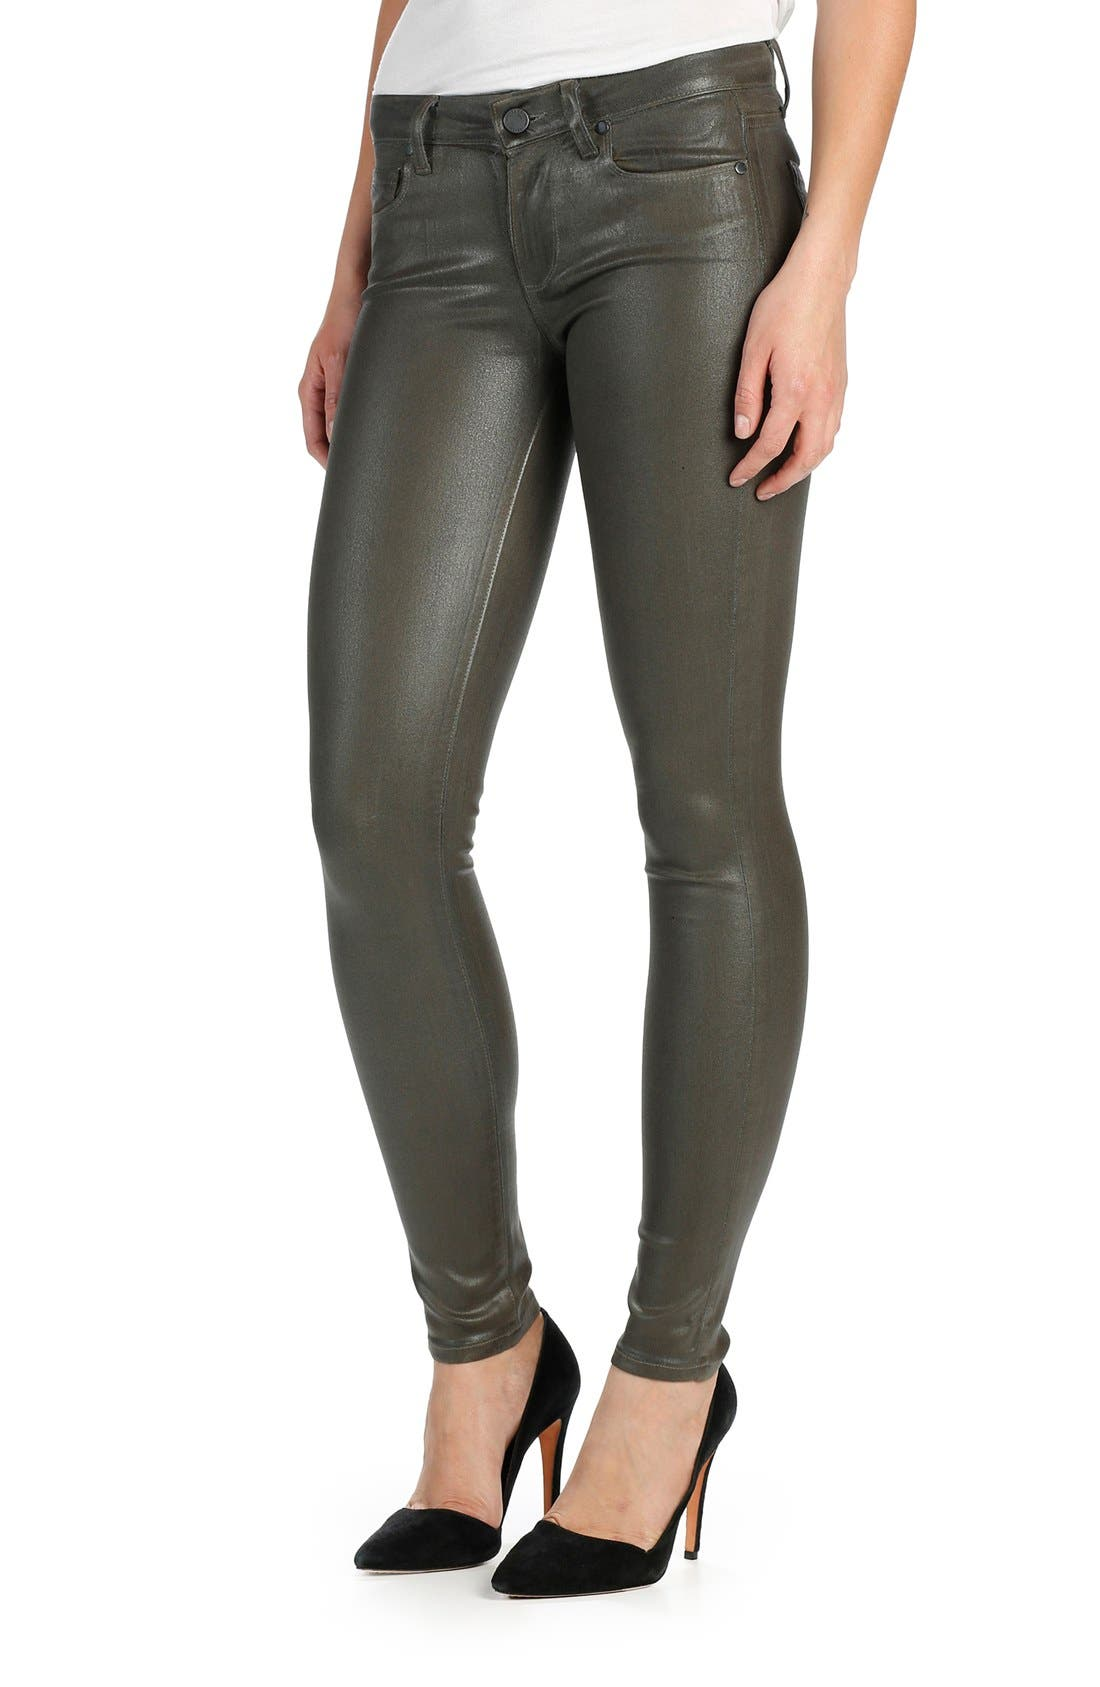 Transcend Verdugo Coated Ultra Skinny Jeans,                             Main thumbnail 1, color,                             Army Luxe Coating